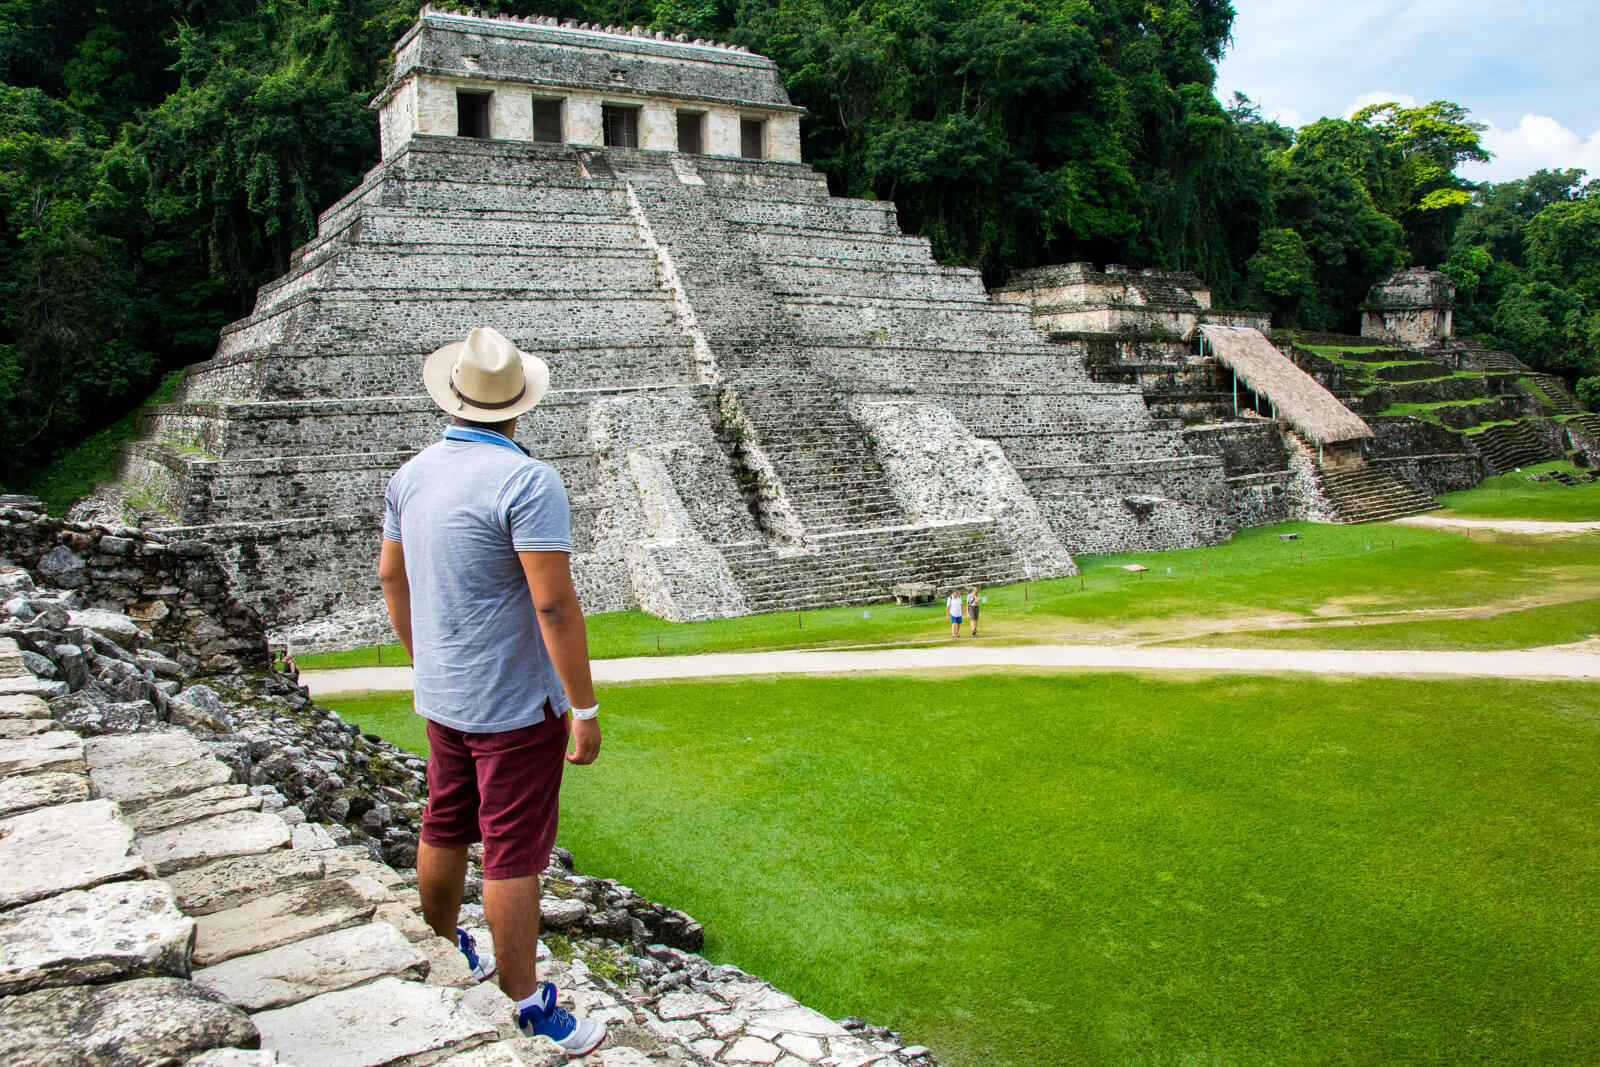 The Mayan Pyramids of Palenque